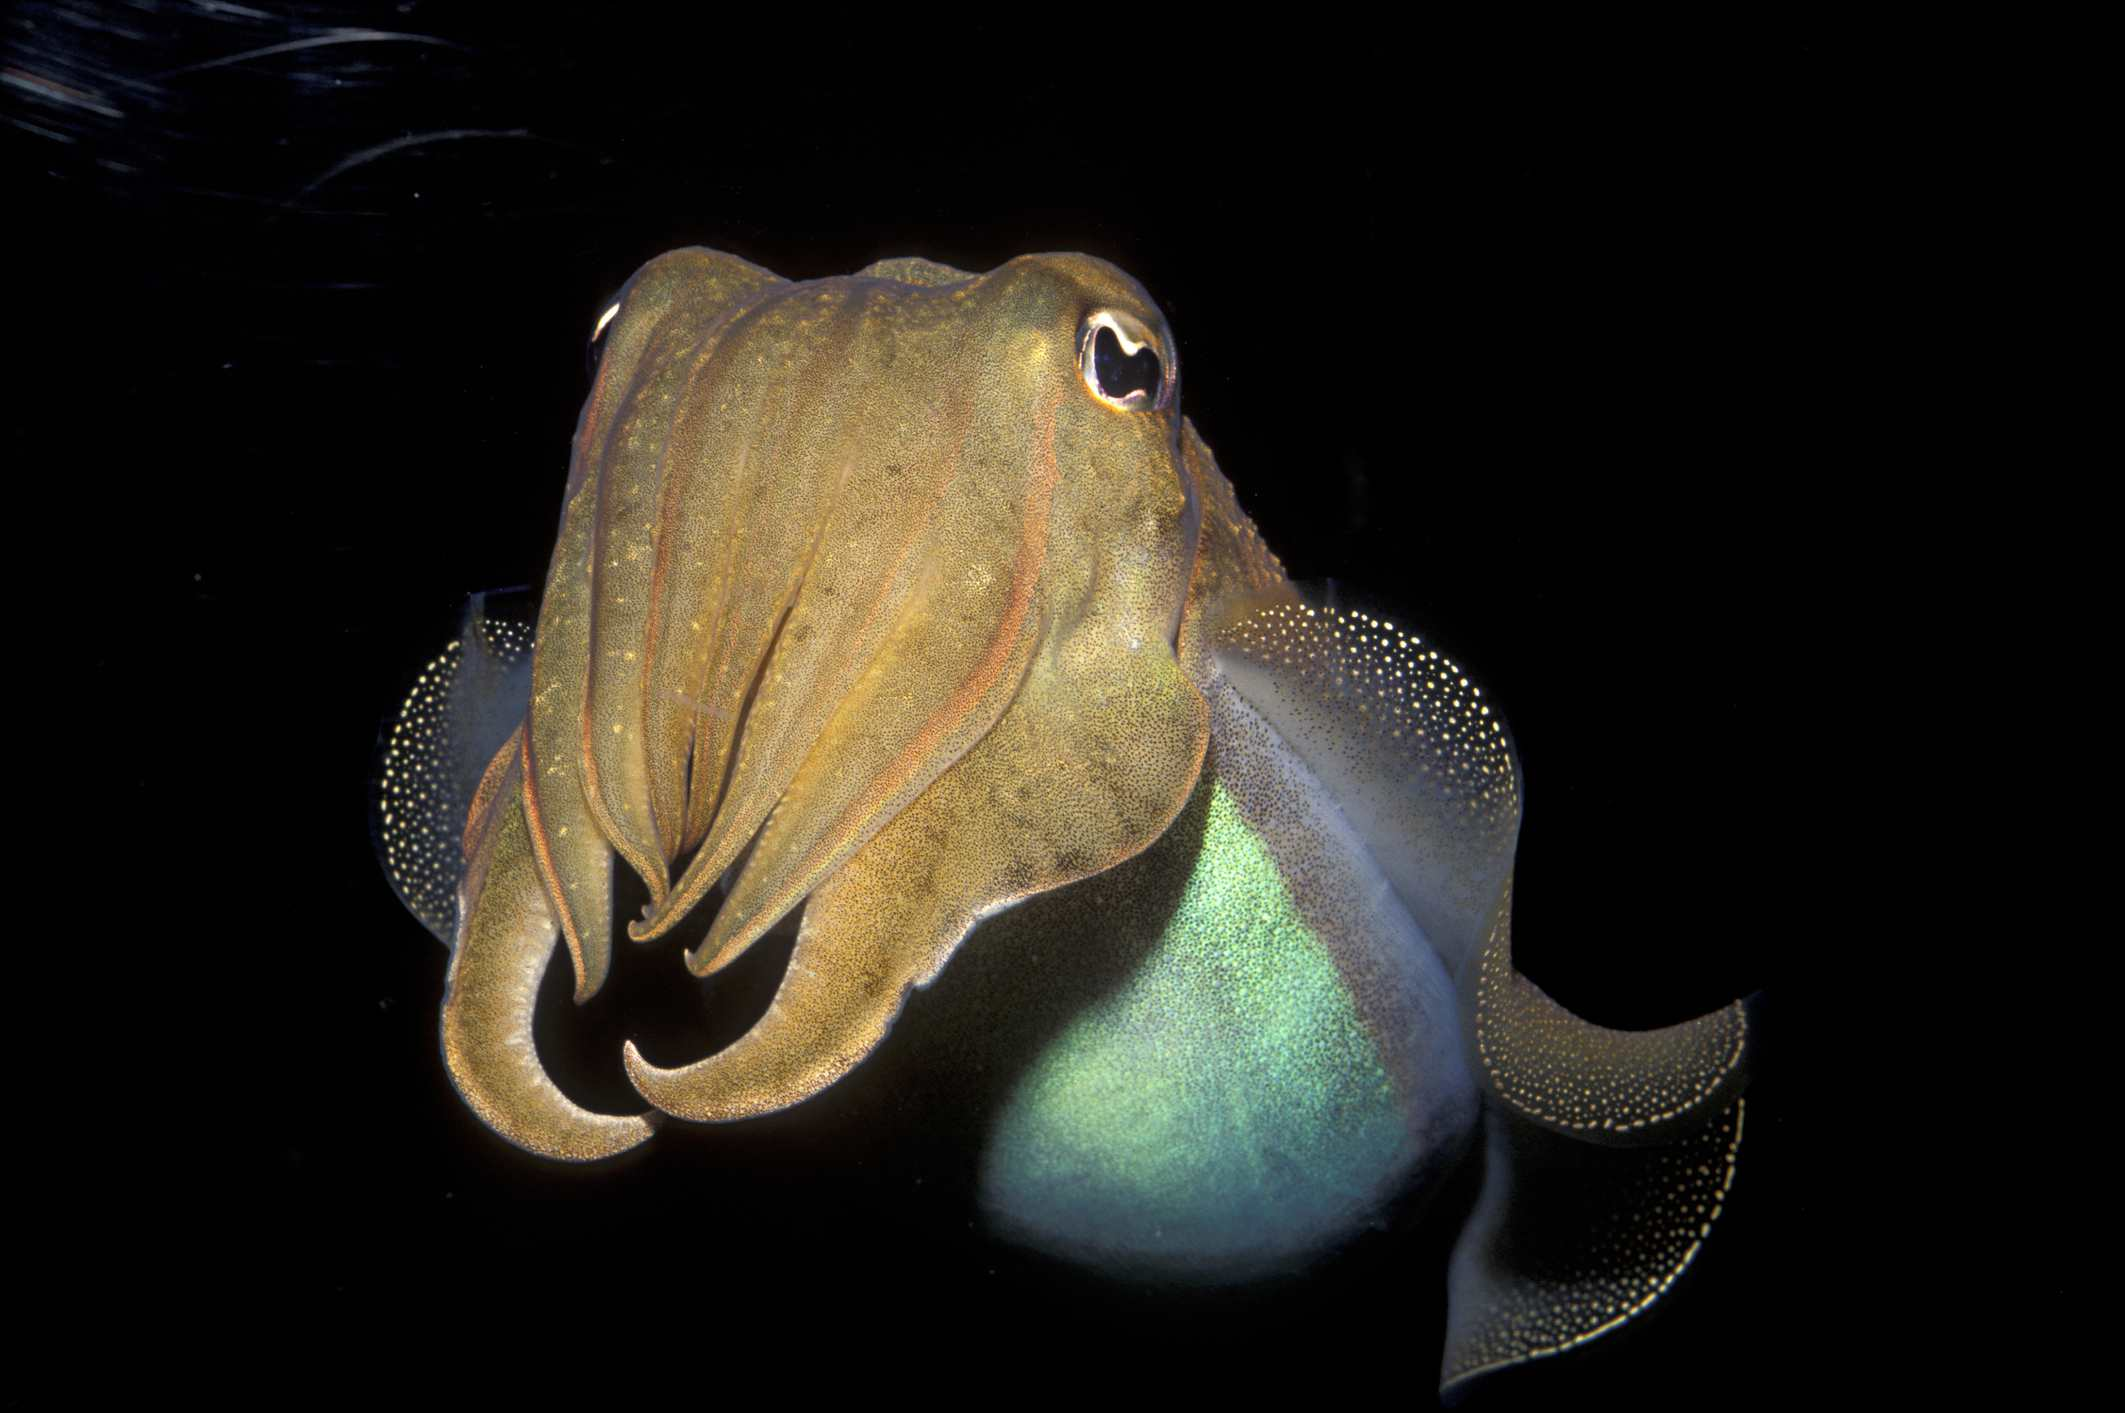 Common Cuttlefish, Sepia officinalis / Schafer & Hill / Photolibrary / Getty Images